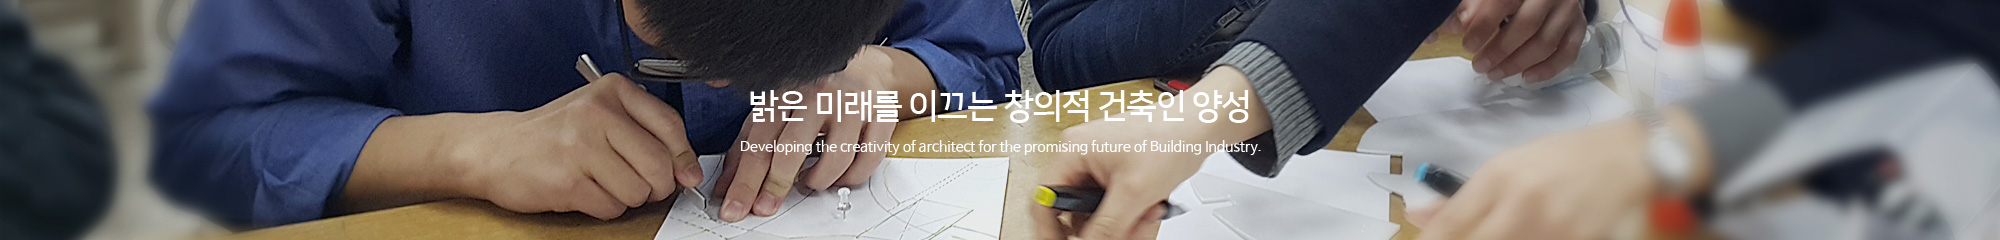 밝은 미래를 이끄는 창의적 건축인 양성 Developing the creativity of architect for the promising future of Building Industry.